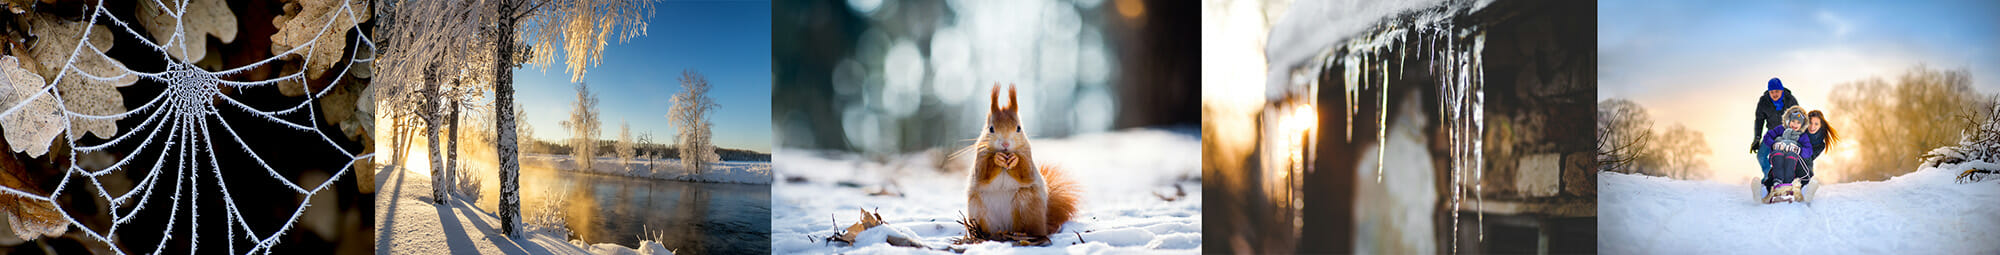 winter snow landscape squirrel family cold christmas trees cobweb frost